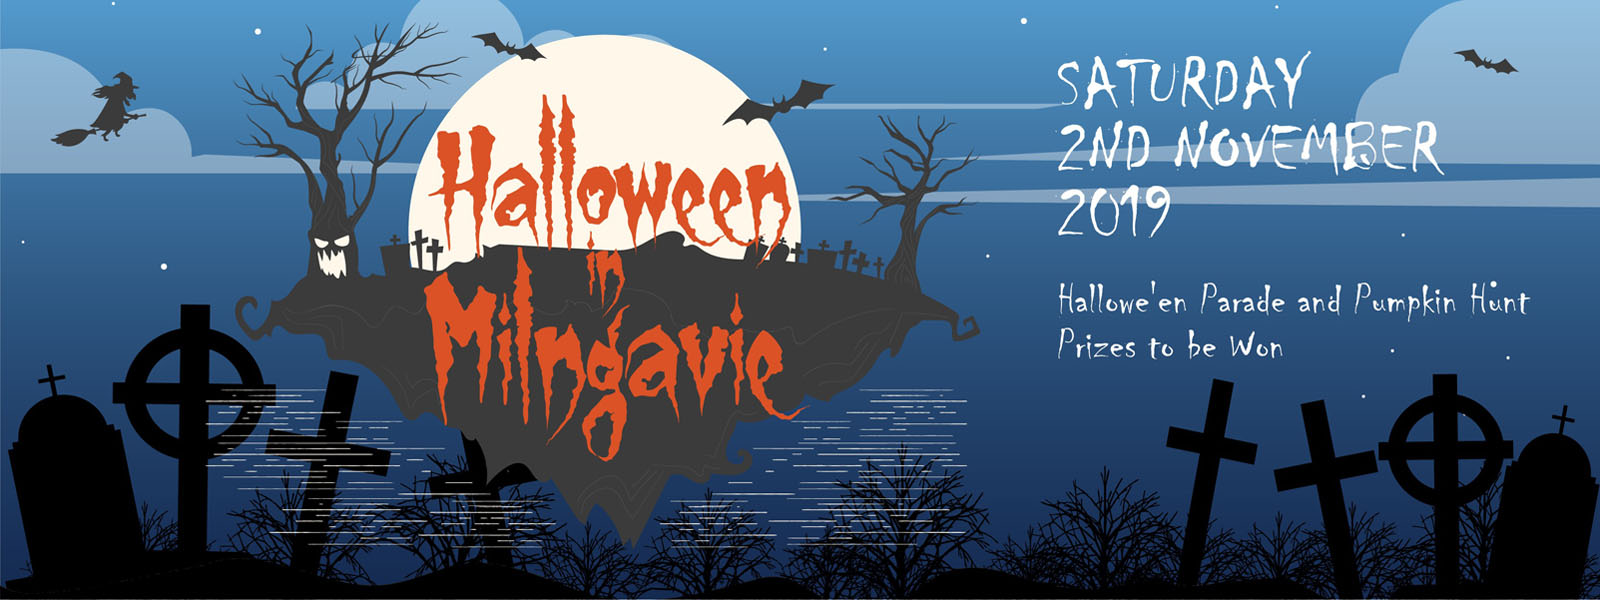 Milngavie Halloween 2019. We dare you to come